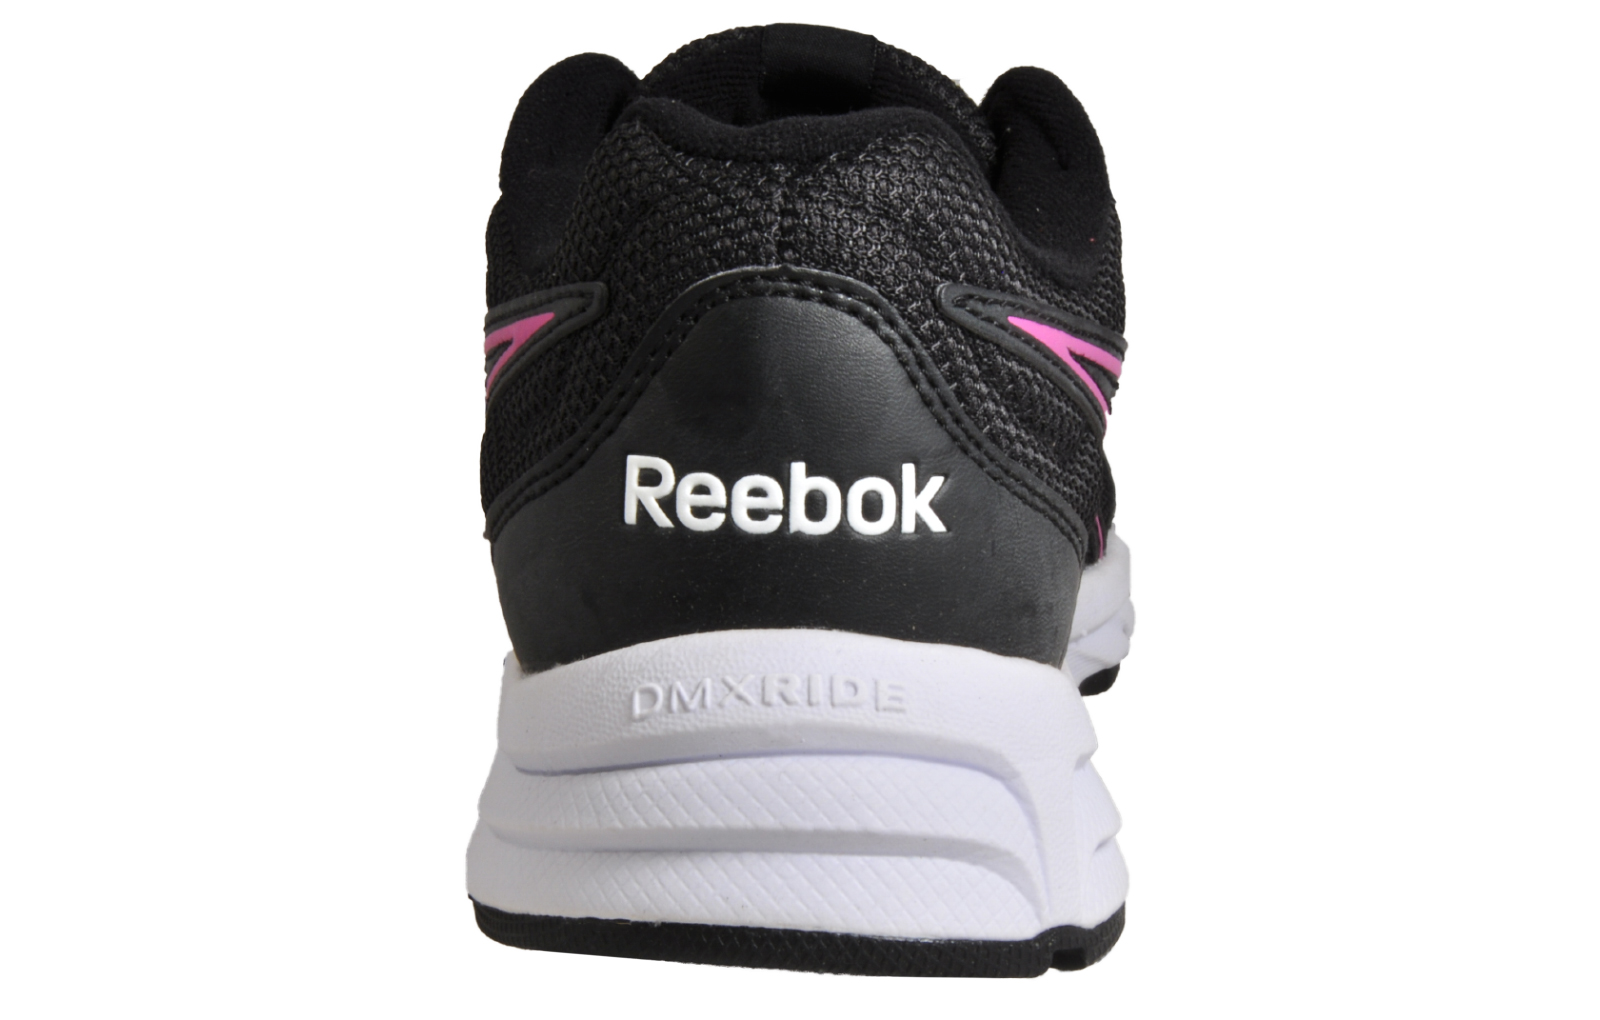 cc7e59f44527f6 Reebok Centerfire RS Women s Running Shoes Fitness Gym Trainers Black